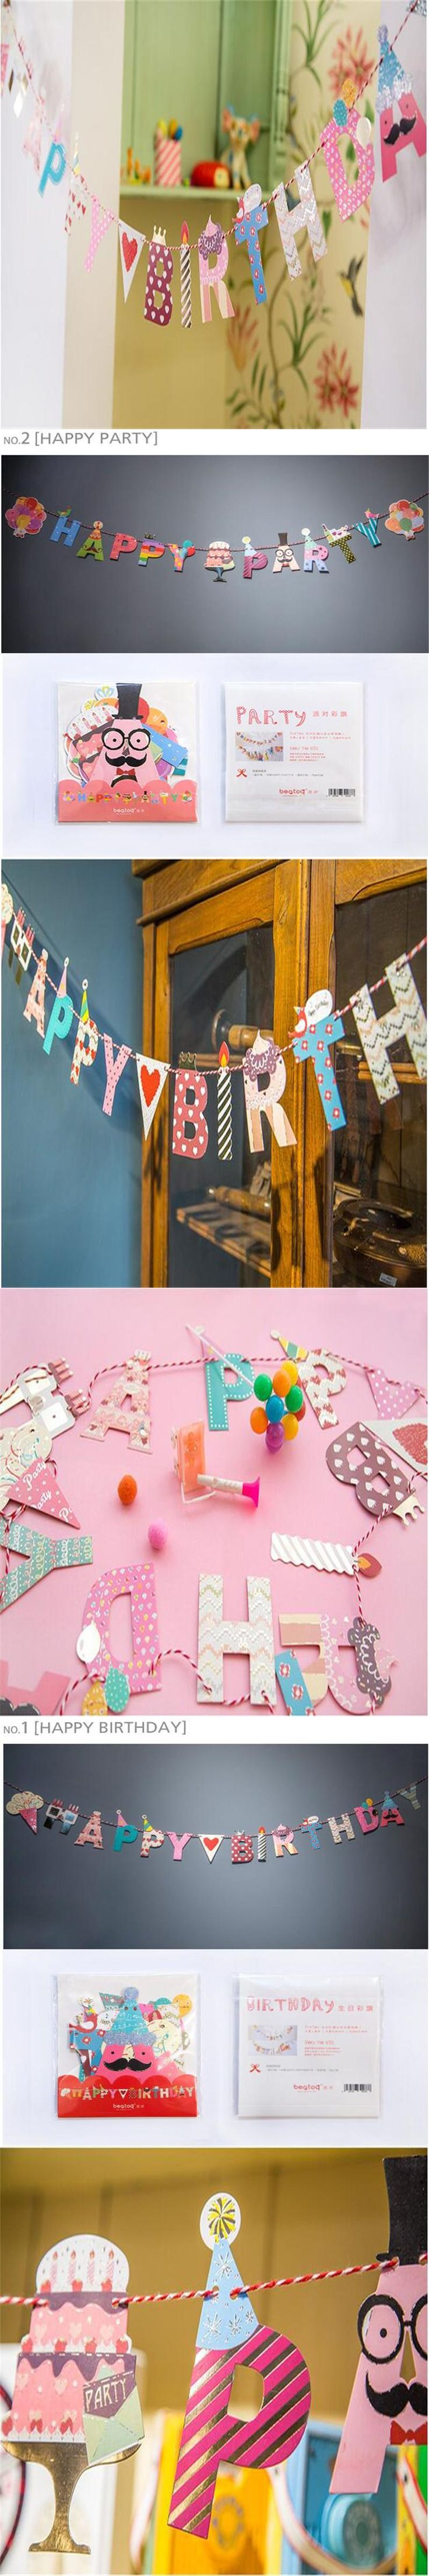 """1pcs letter """"happy birthday"""" flags Garland  Birthday party Pennant Flag Wedding Home room Decor event supplies decoration-B"""